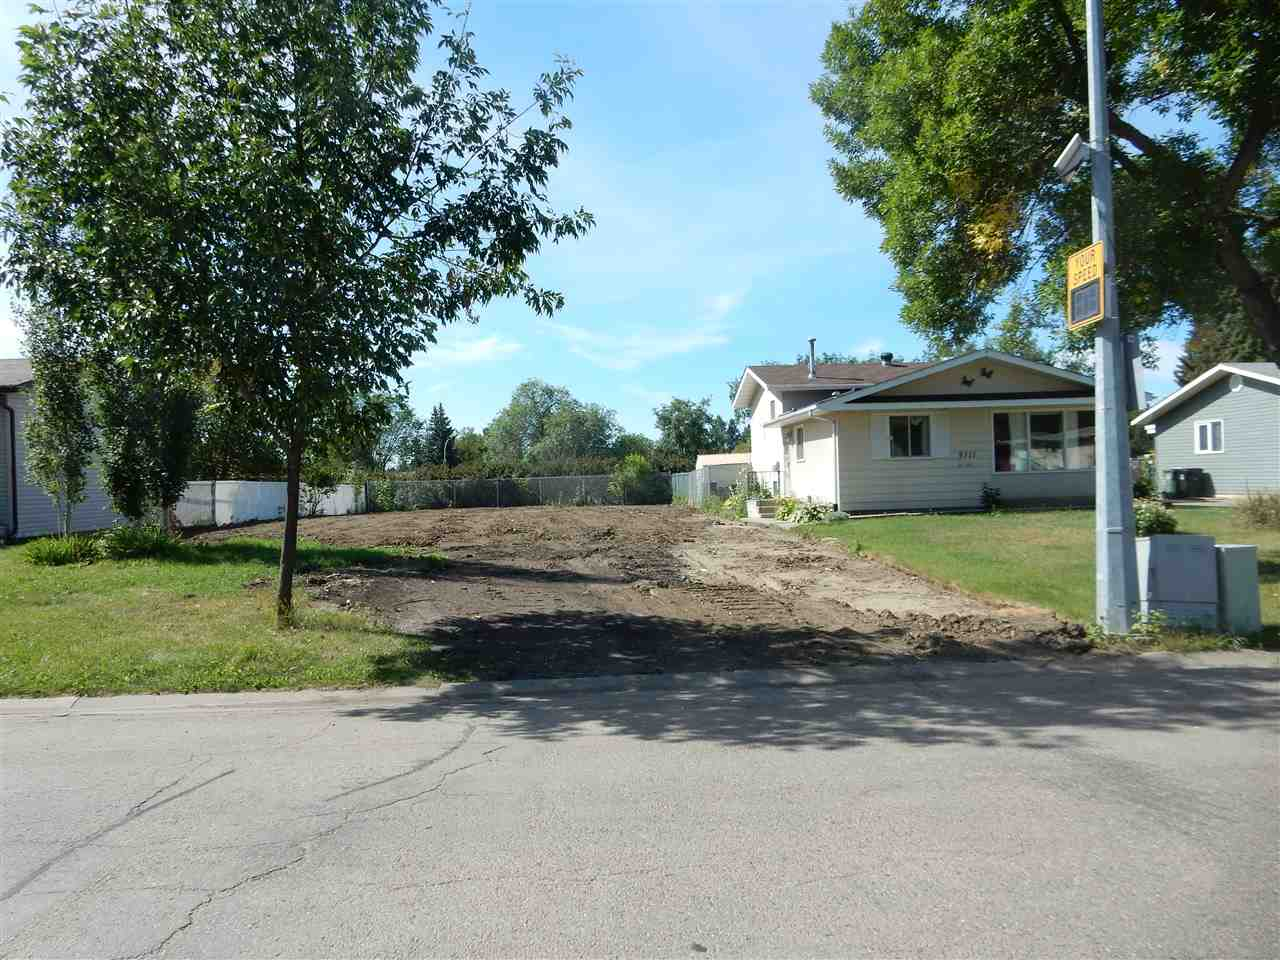 5109 57 Ave, at $137,000